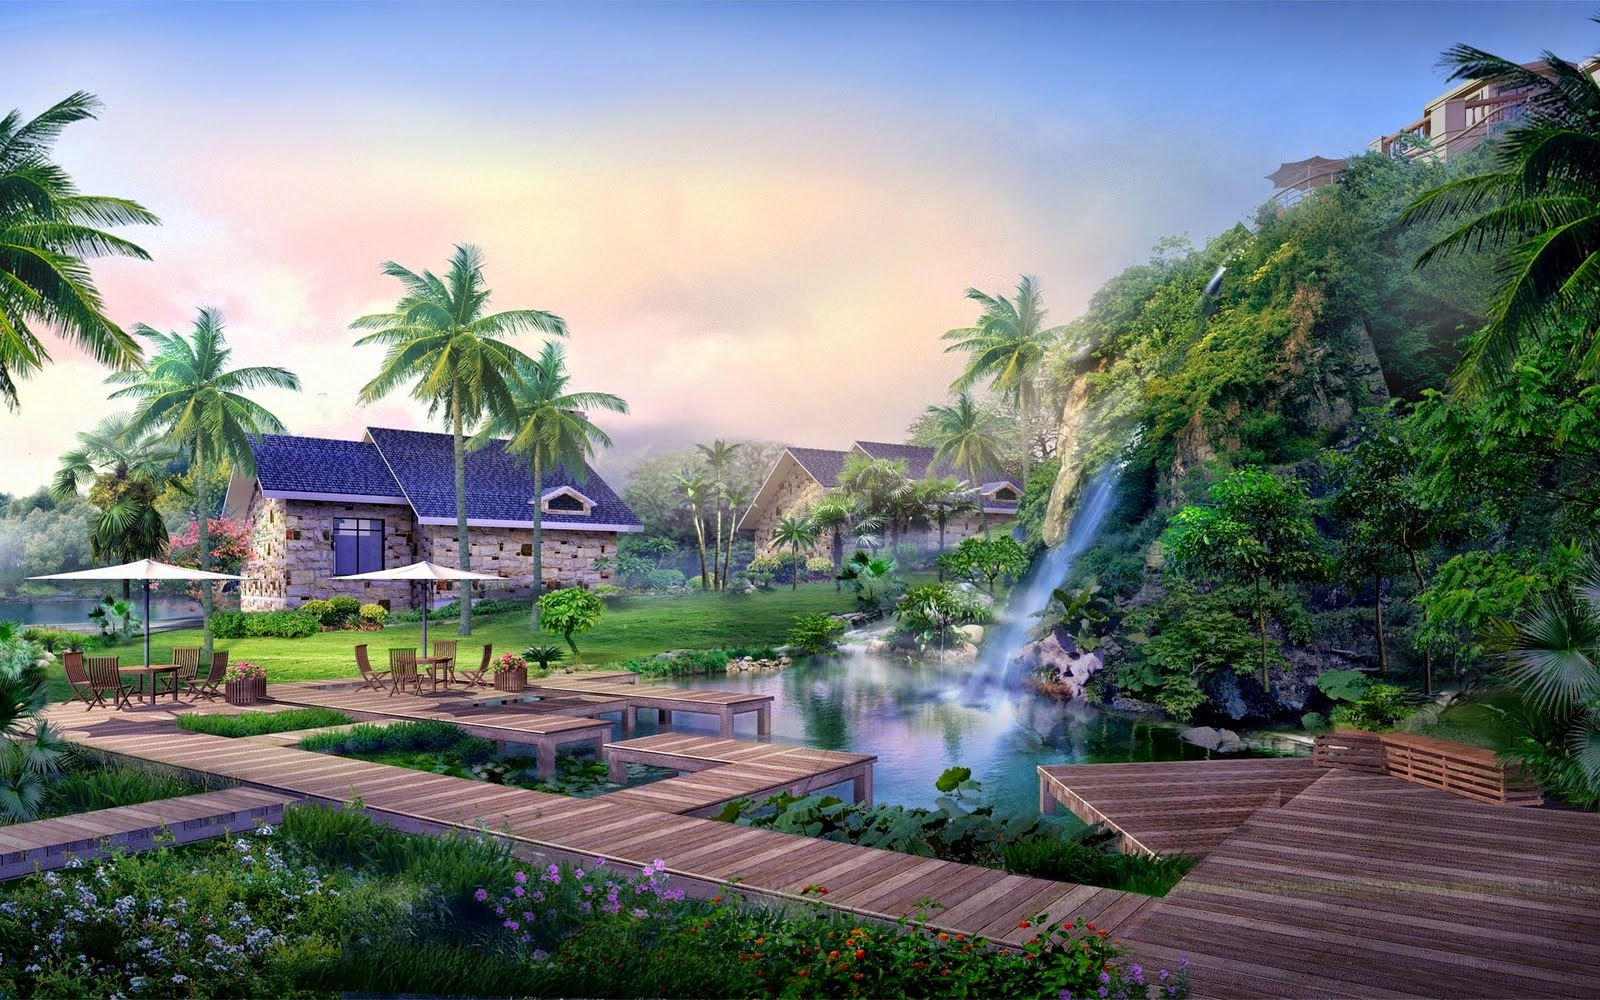 Widescreen High Resolution Digital Landscaping Pictures